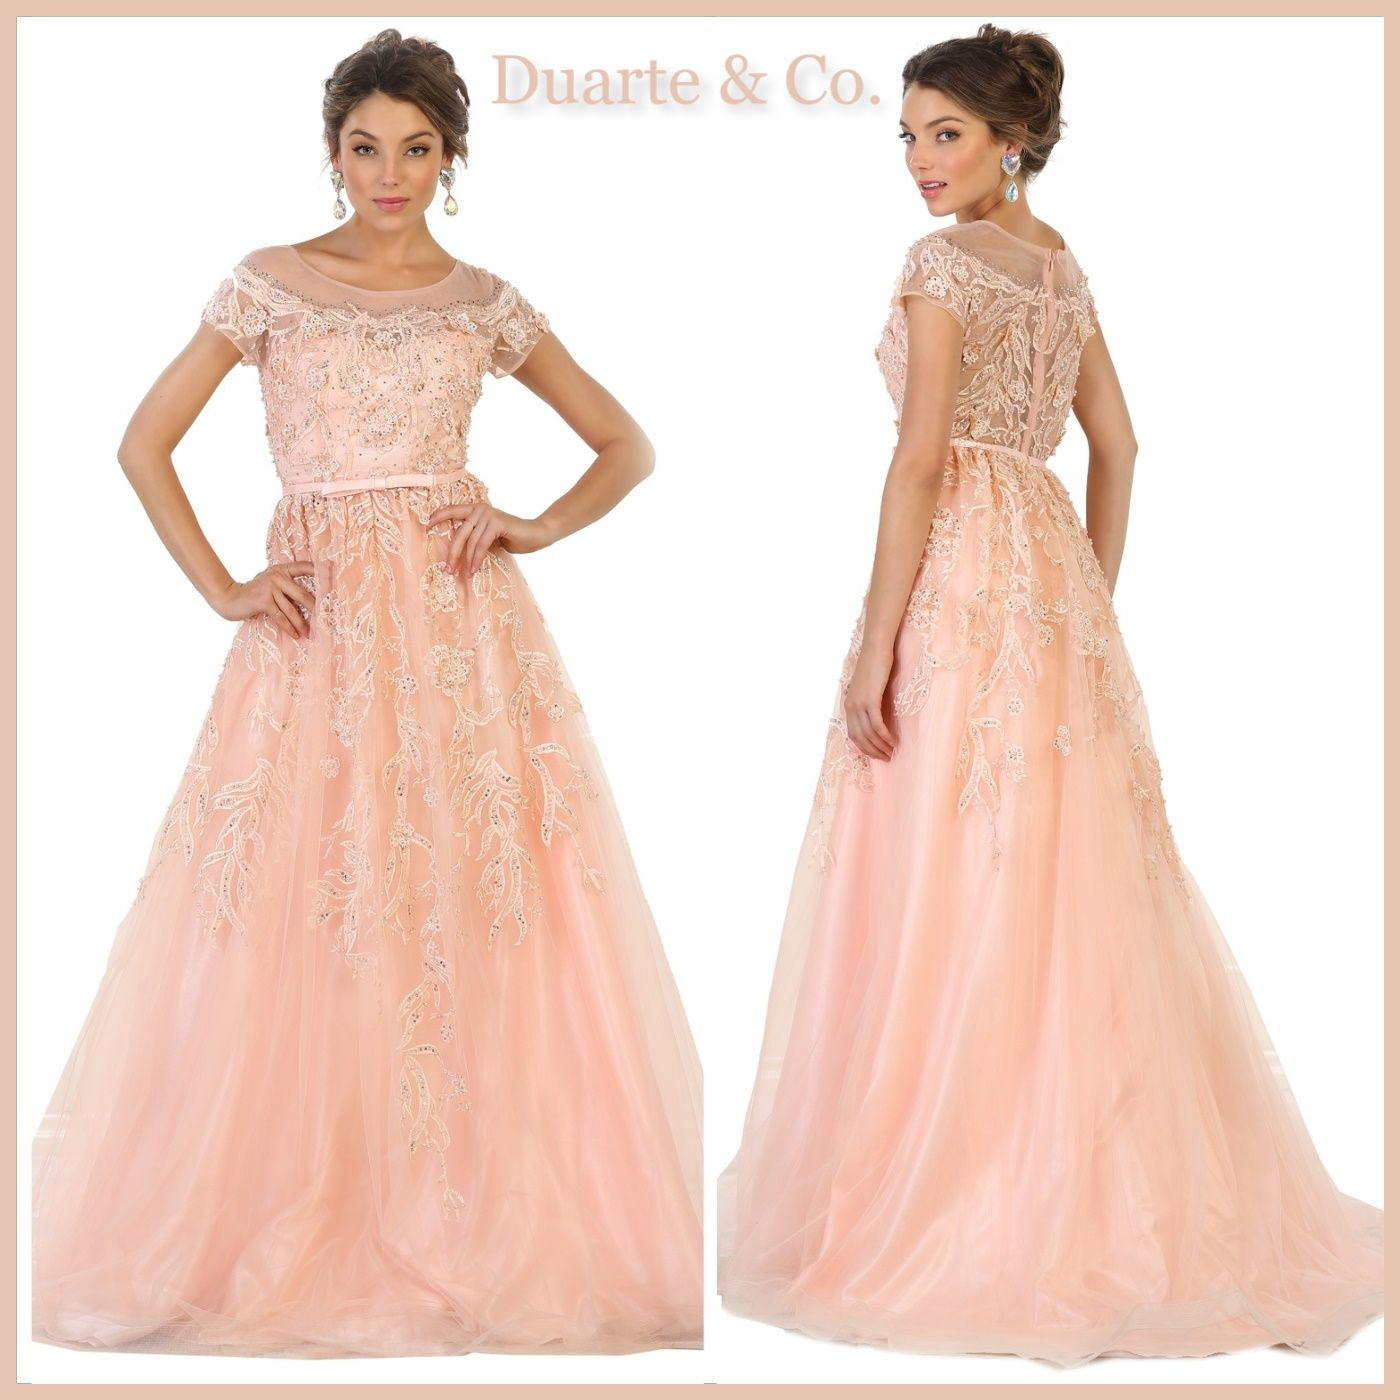 Elegant party dress wplus sizes dc prom ball gowns